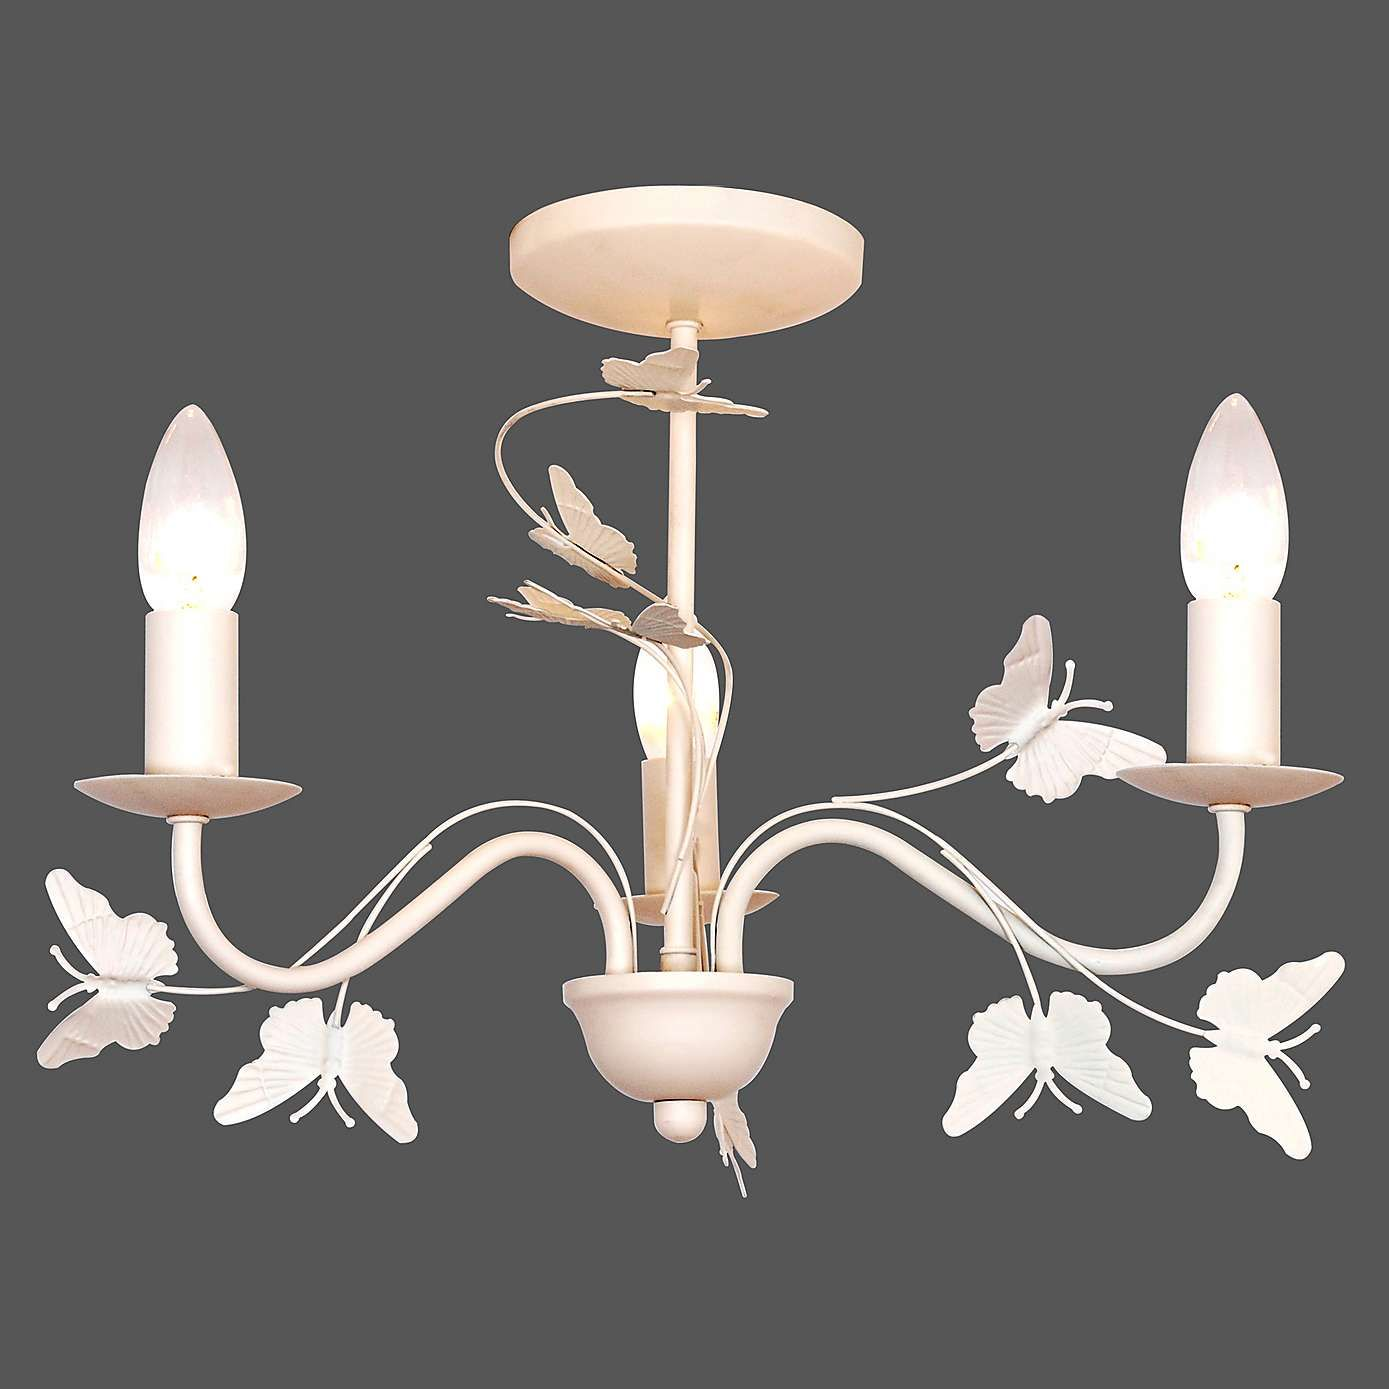 Bedroom Ceiling Lights Nz Vintage Butterfly 3 Light Fitting Dunelm Eleanors Room